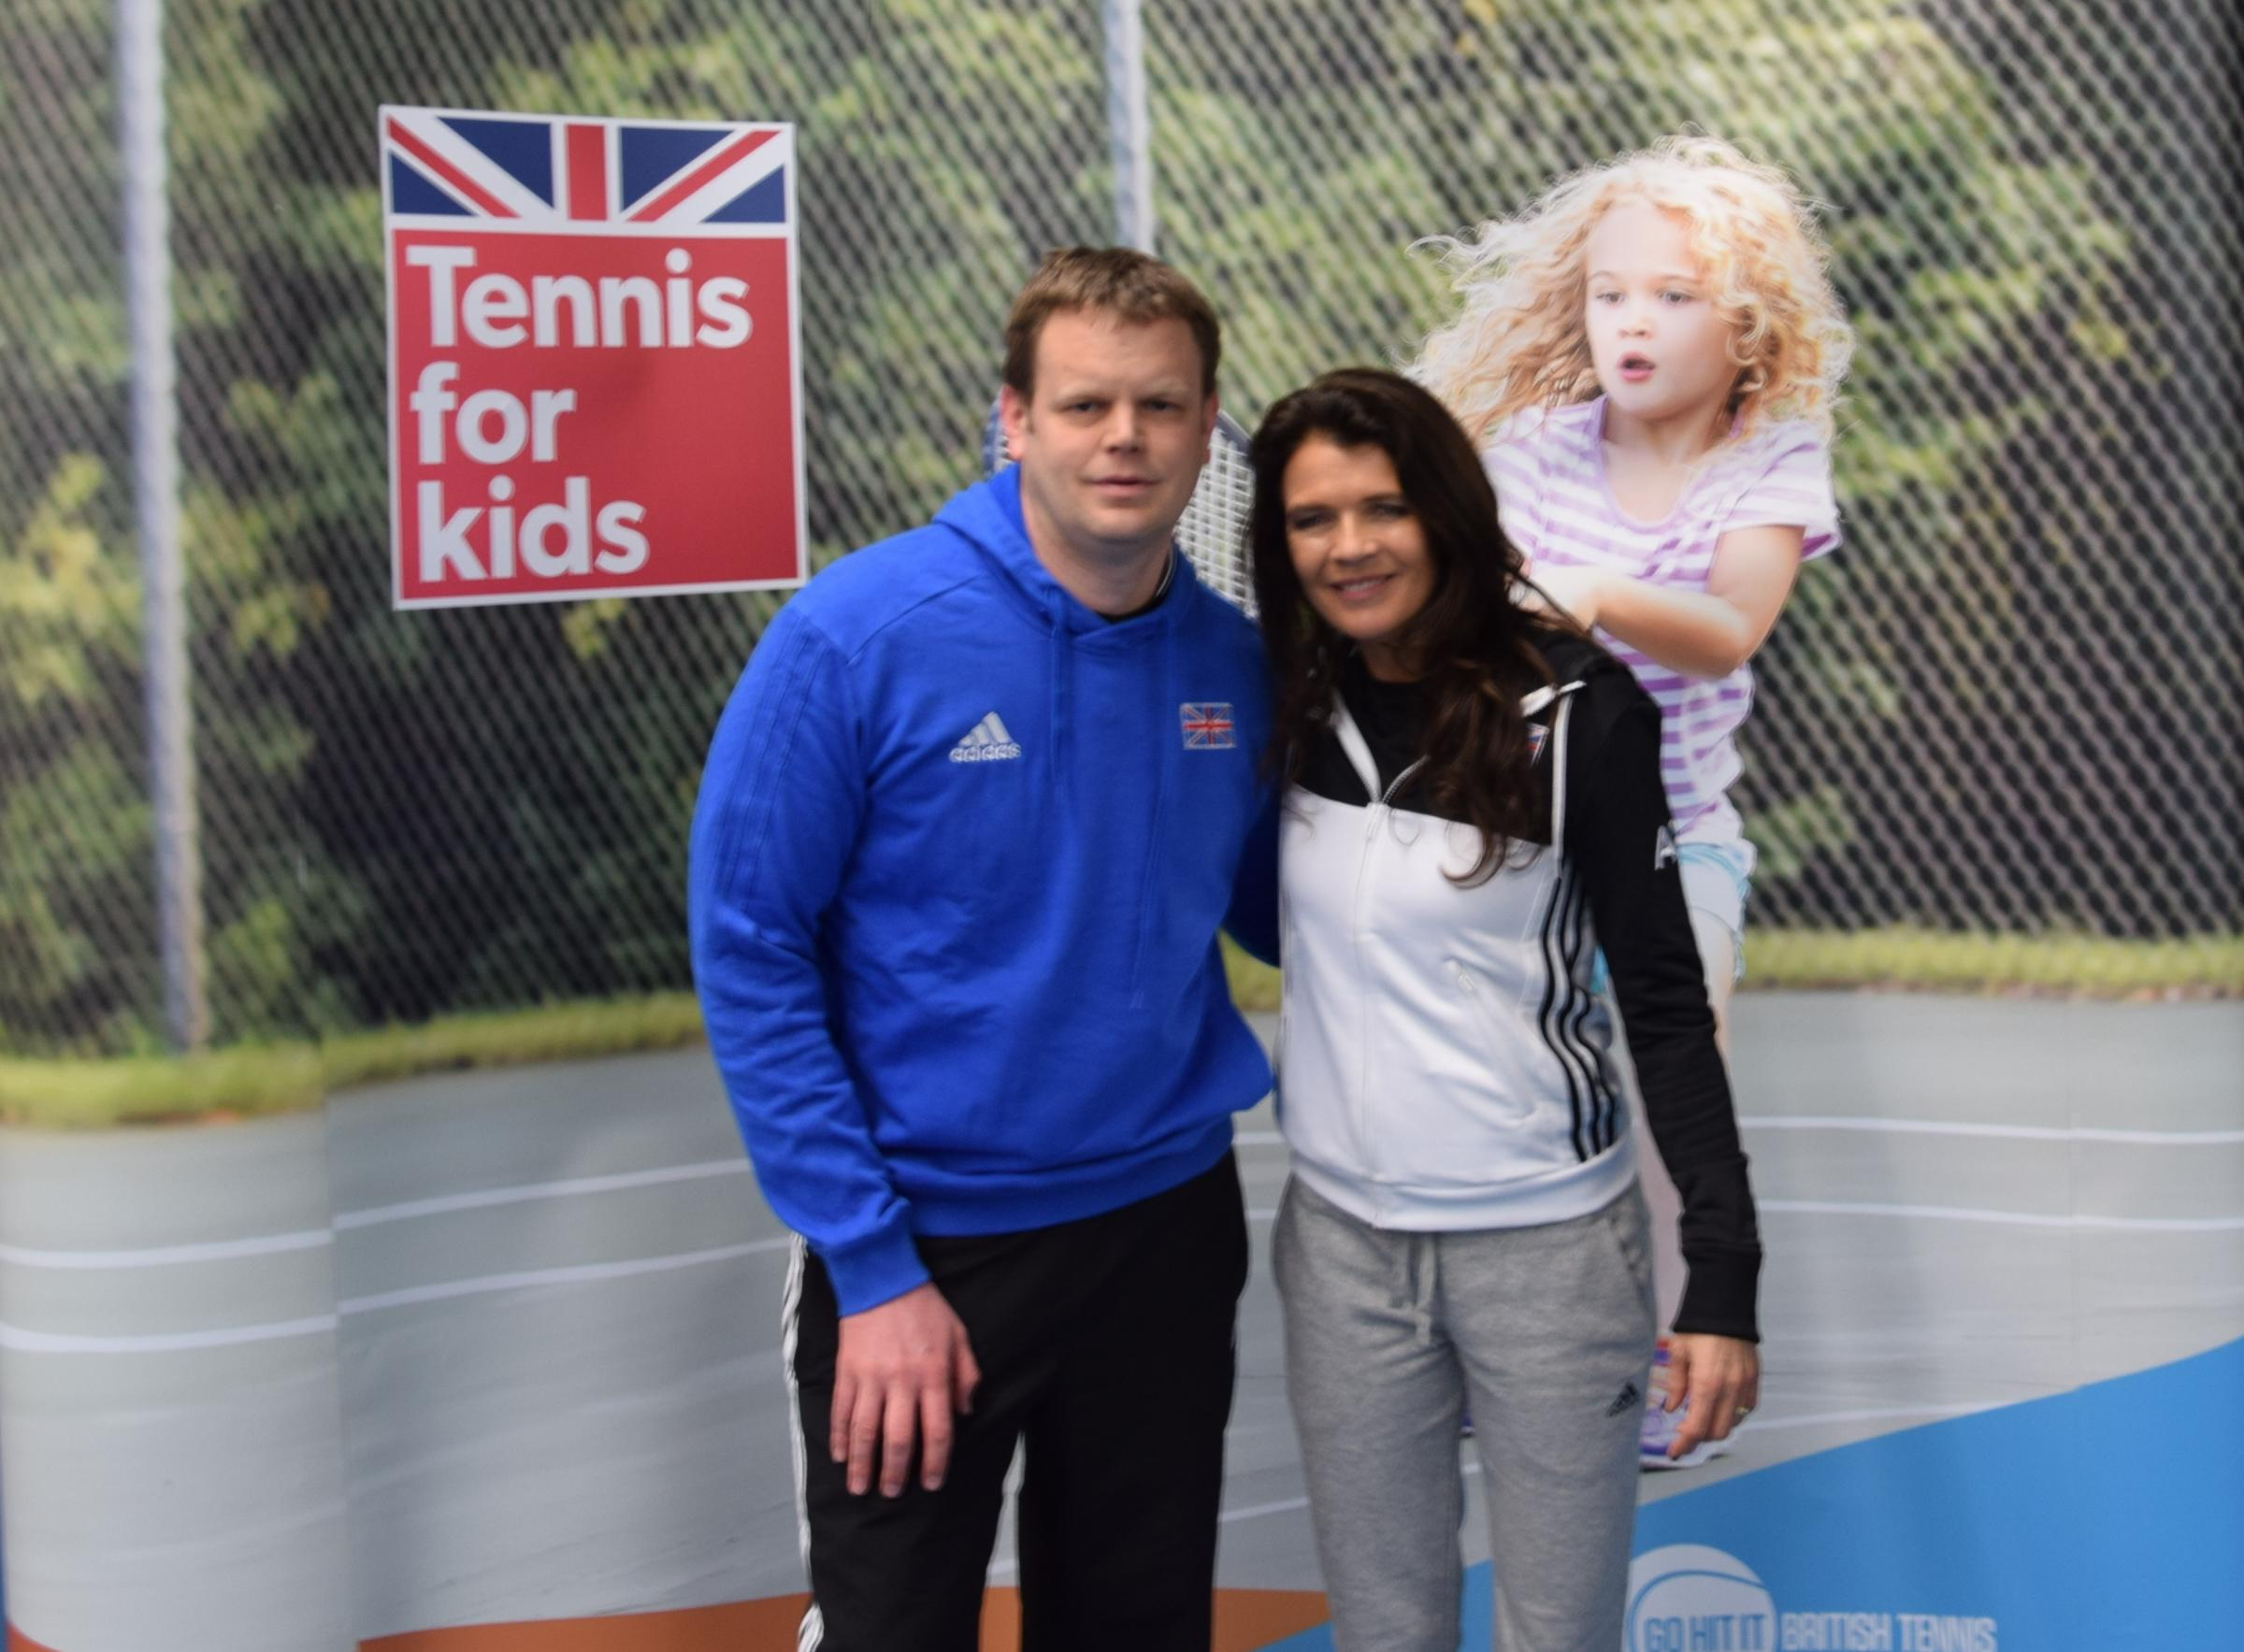 Kington coach Steve Hodges with British Number one, Annabel Croft